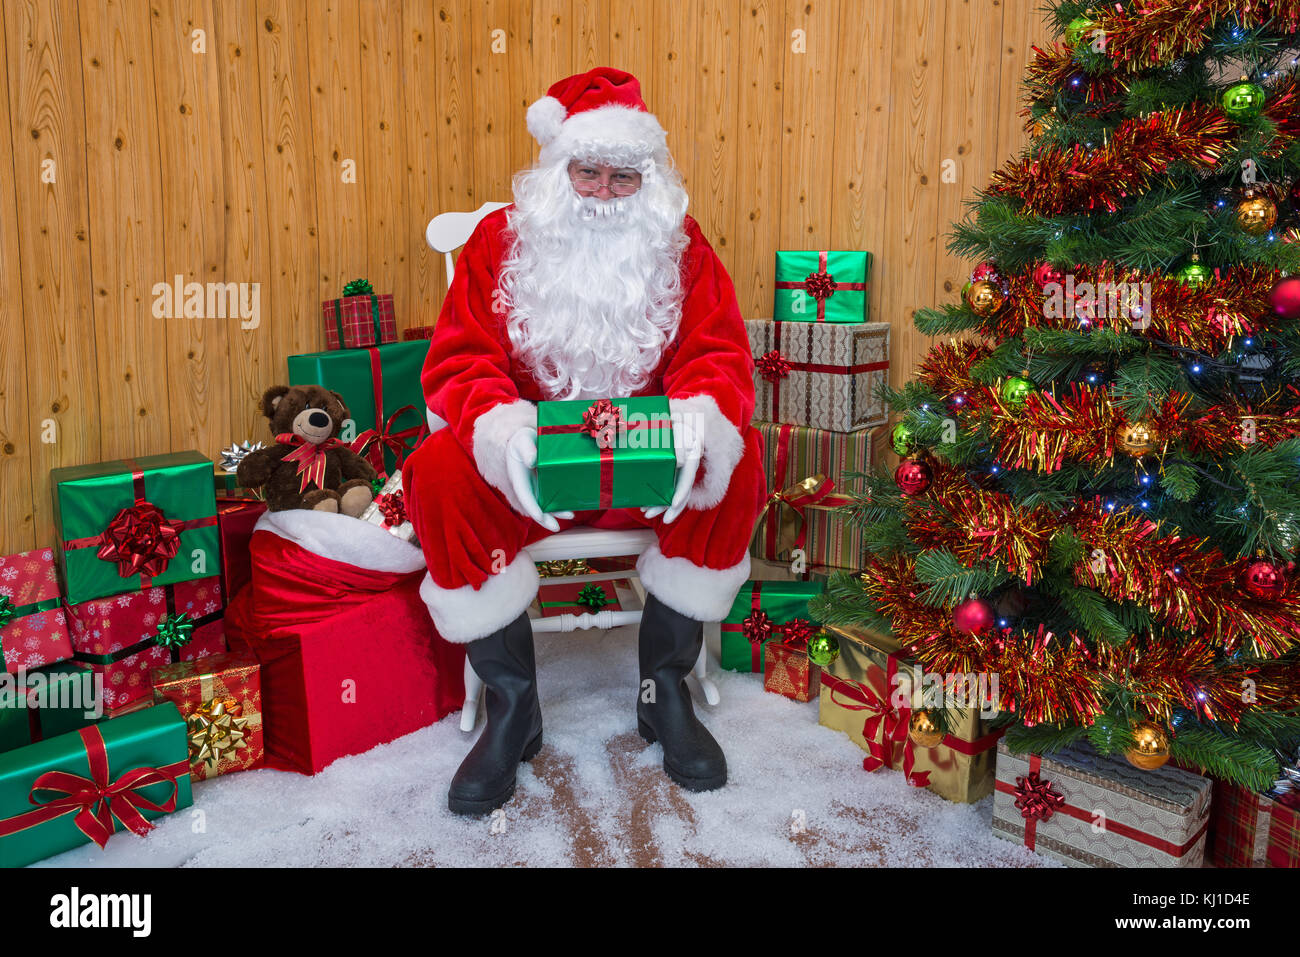 Santa Claus In His Grotto Surrounded By A Christmas Tree With Stock